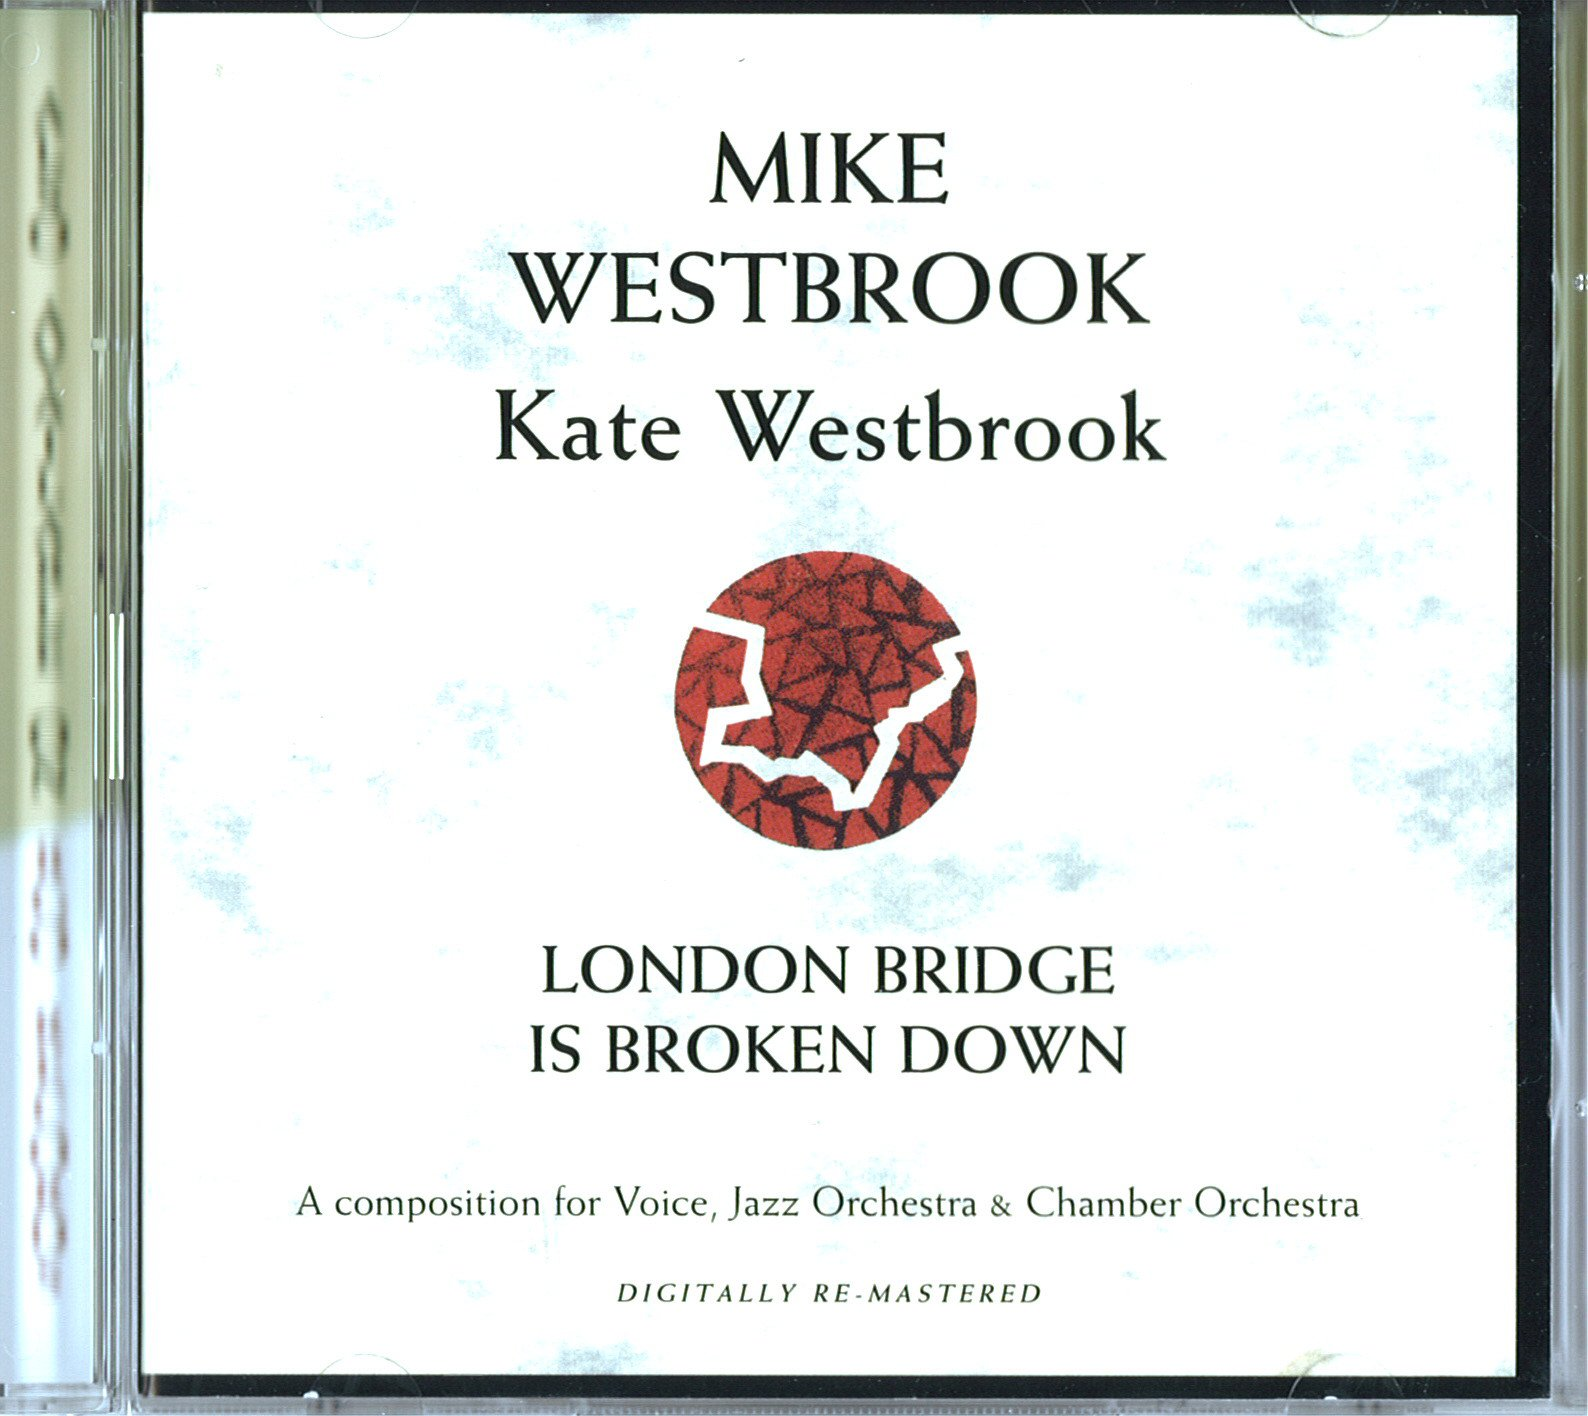 Mike Westbrook - London Bridge is broken down